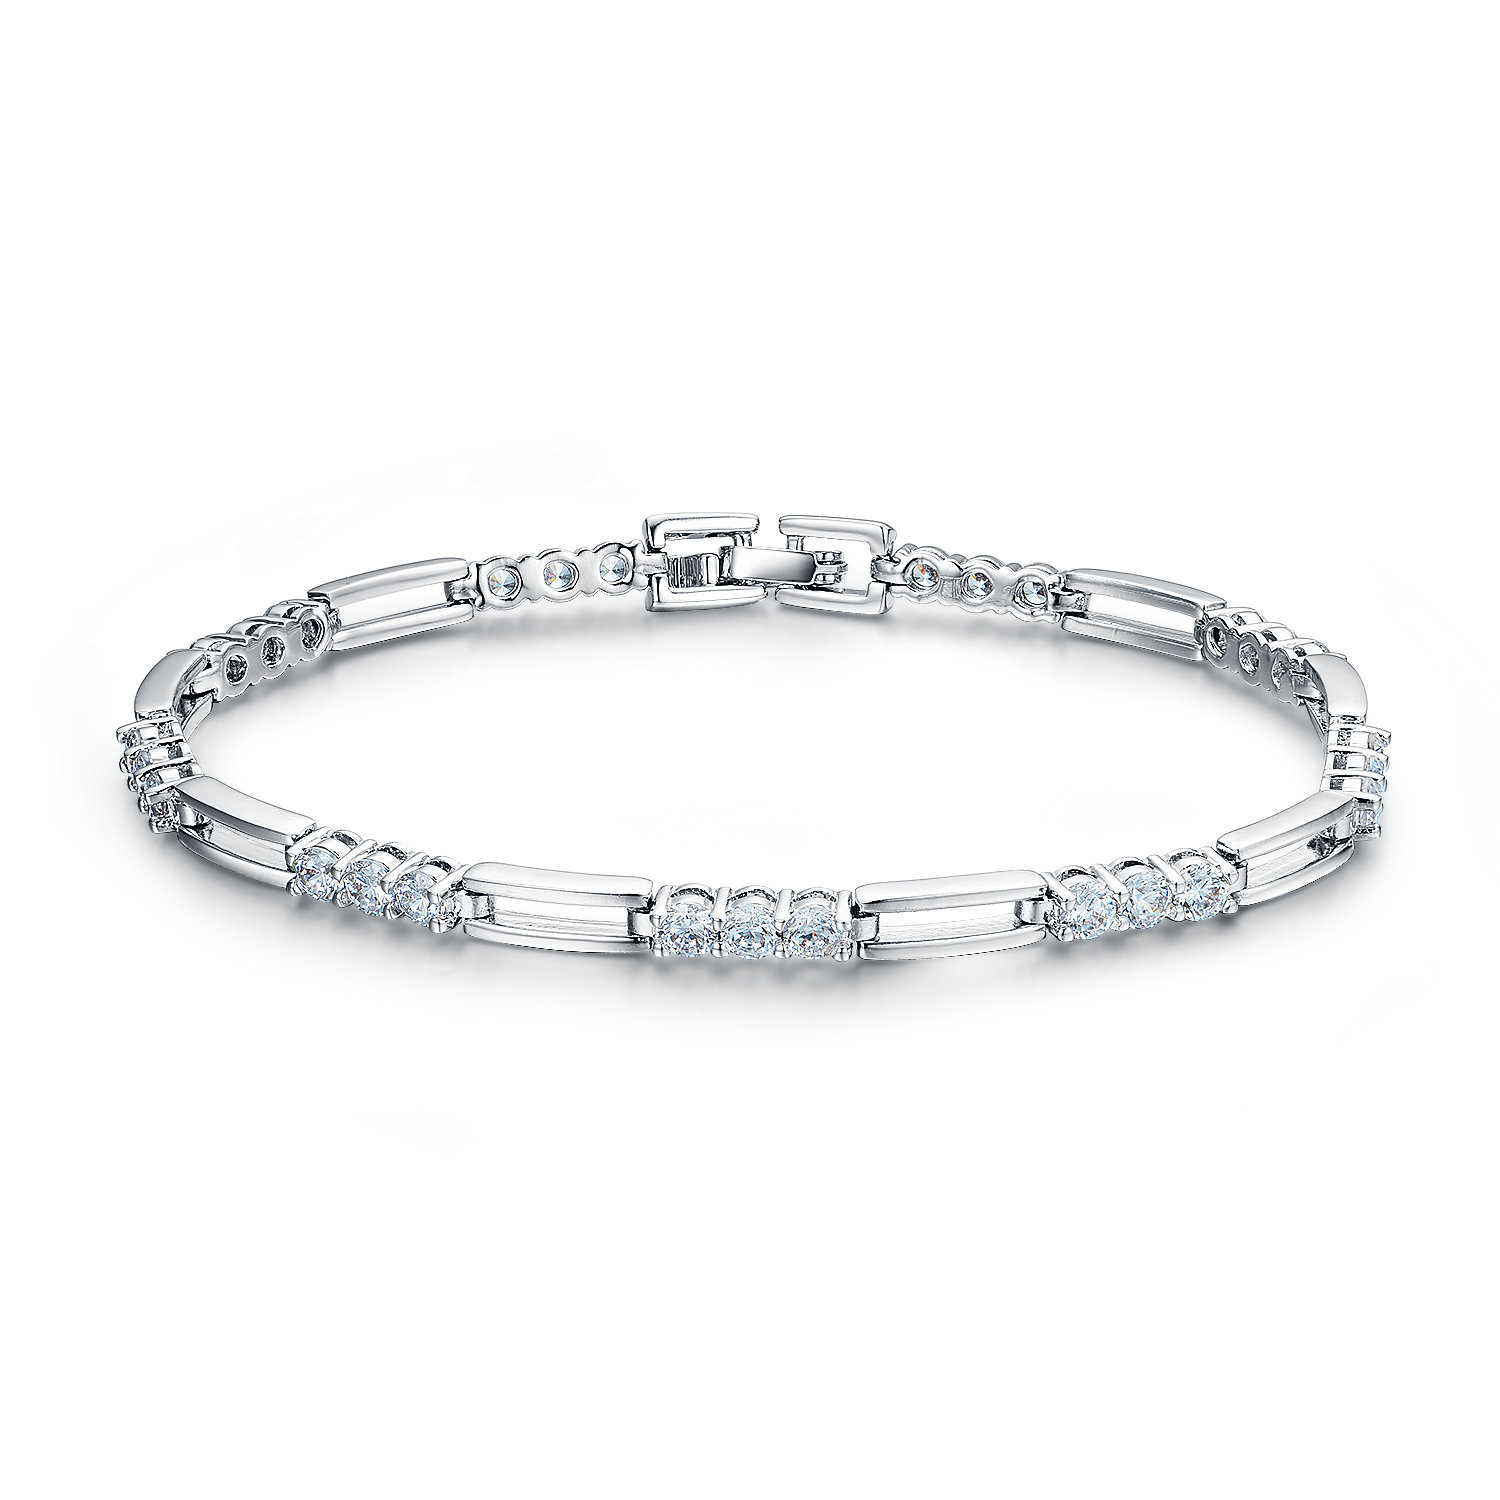 BR3469- Classic & timeless 3-Stone links bracelet in Sterling Silver under Rhodium plating from China Jewelry Vendor